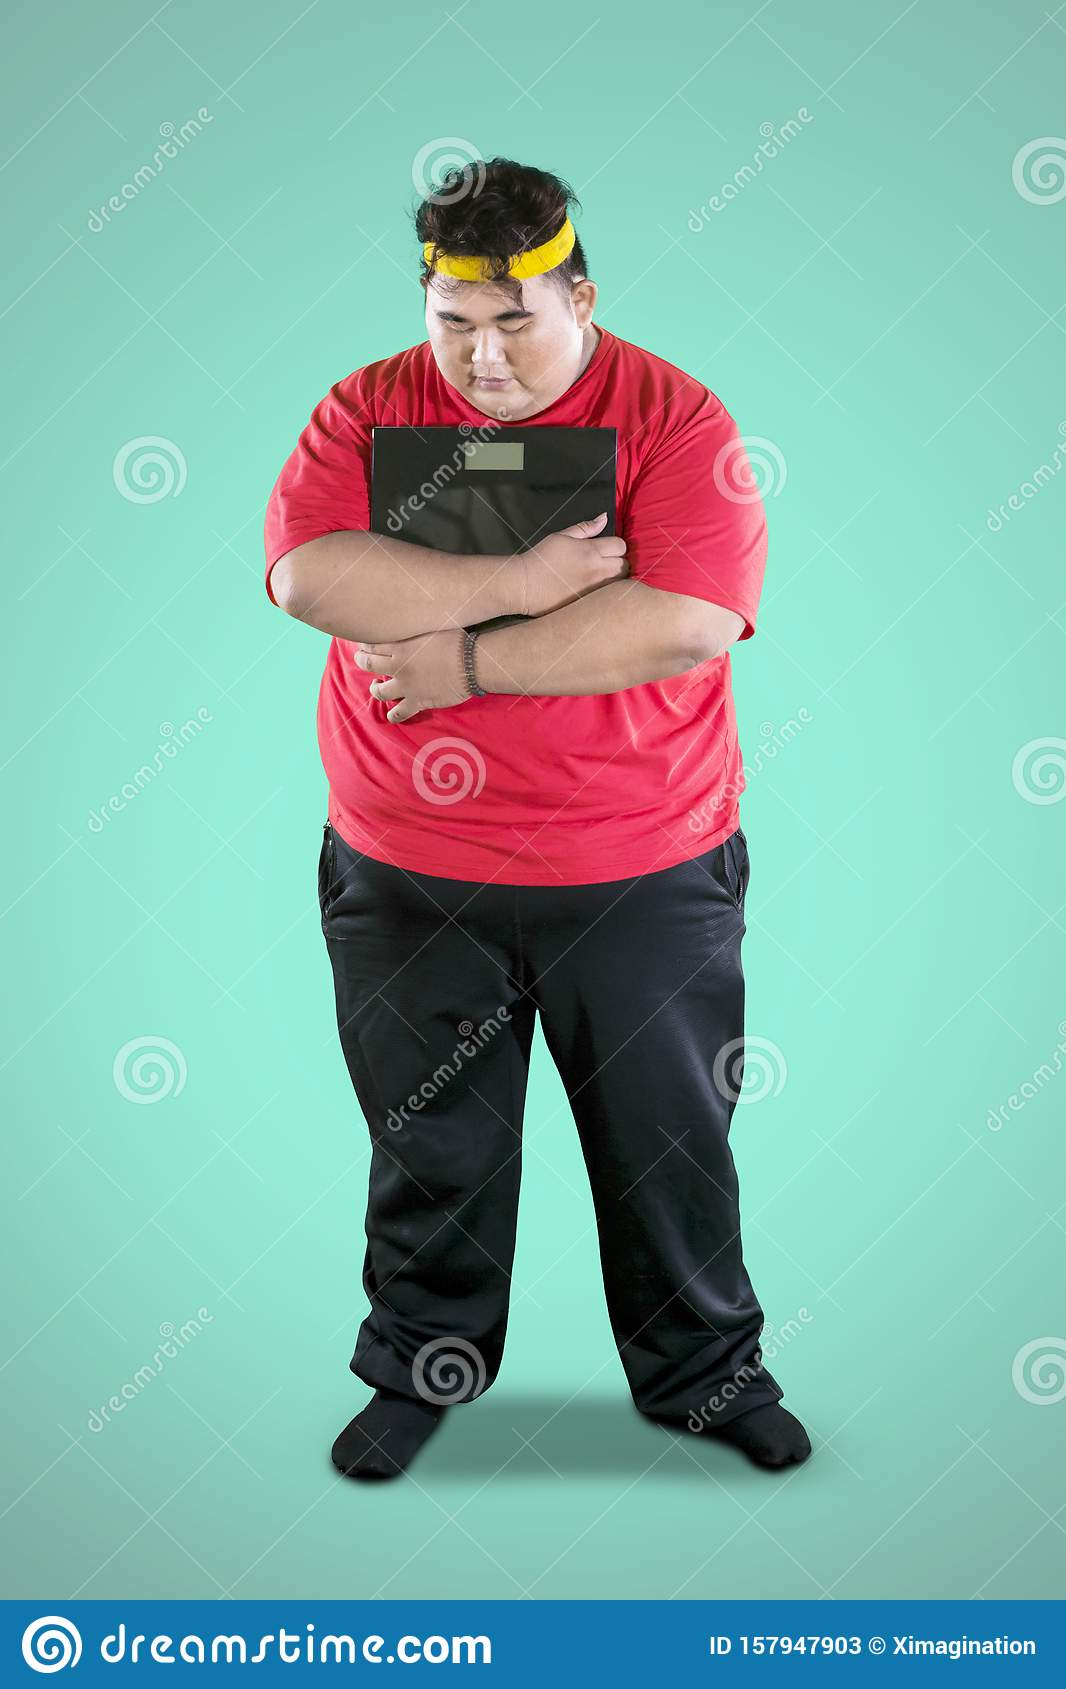 Sad Fat Man Holding A Weight Scale On Studio Stock Image